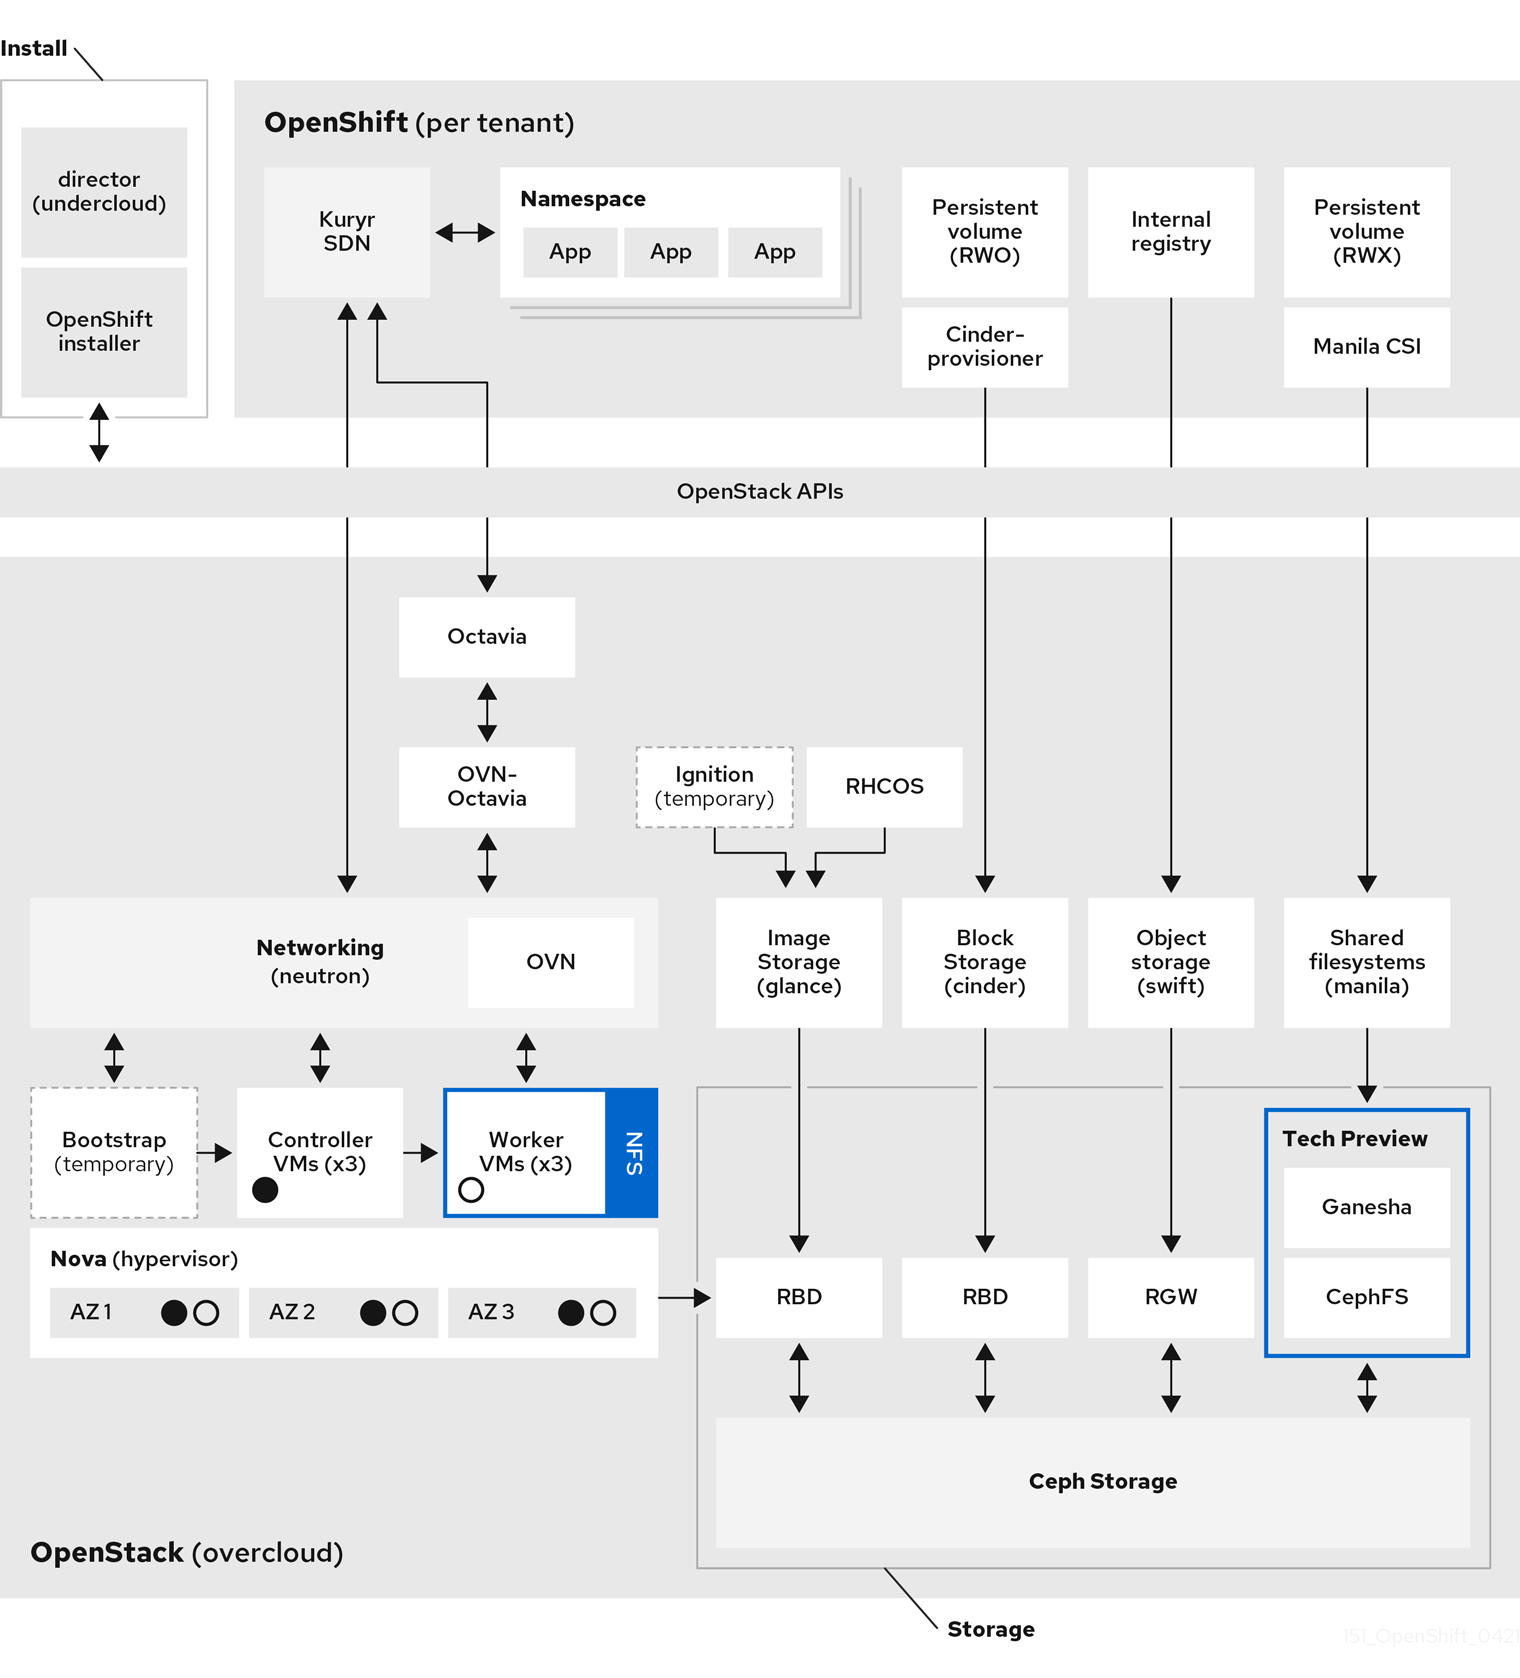 A diagram of the OpenShift on OpenStack reference architecture at a high level.